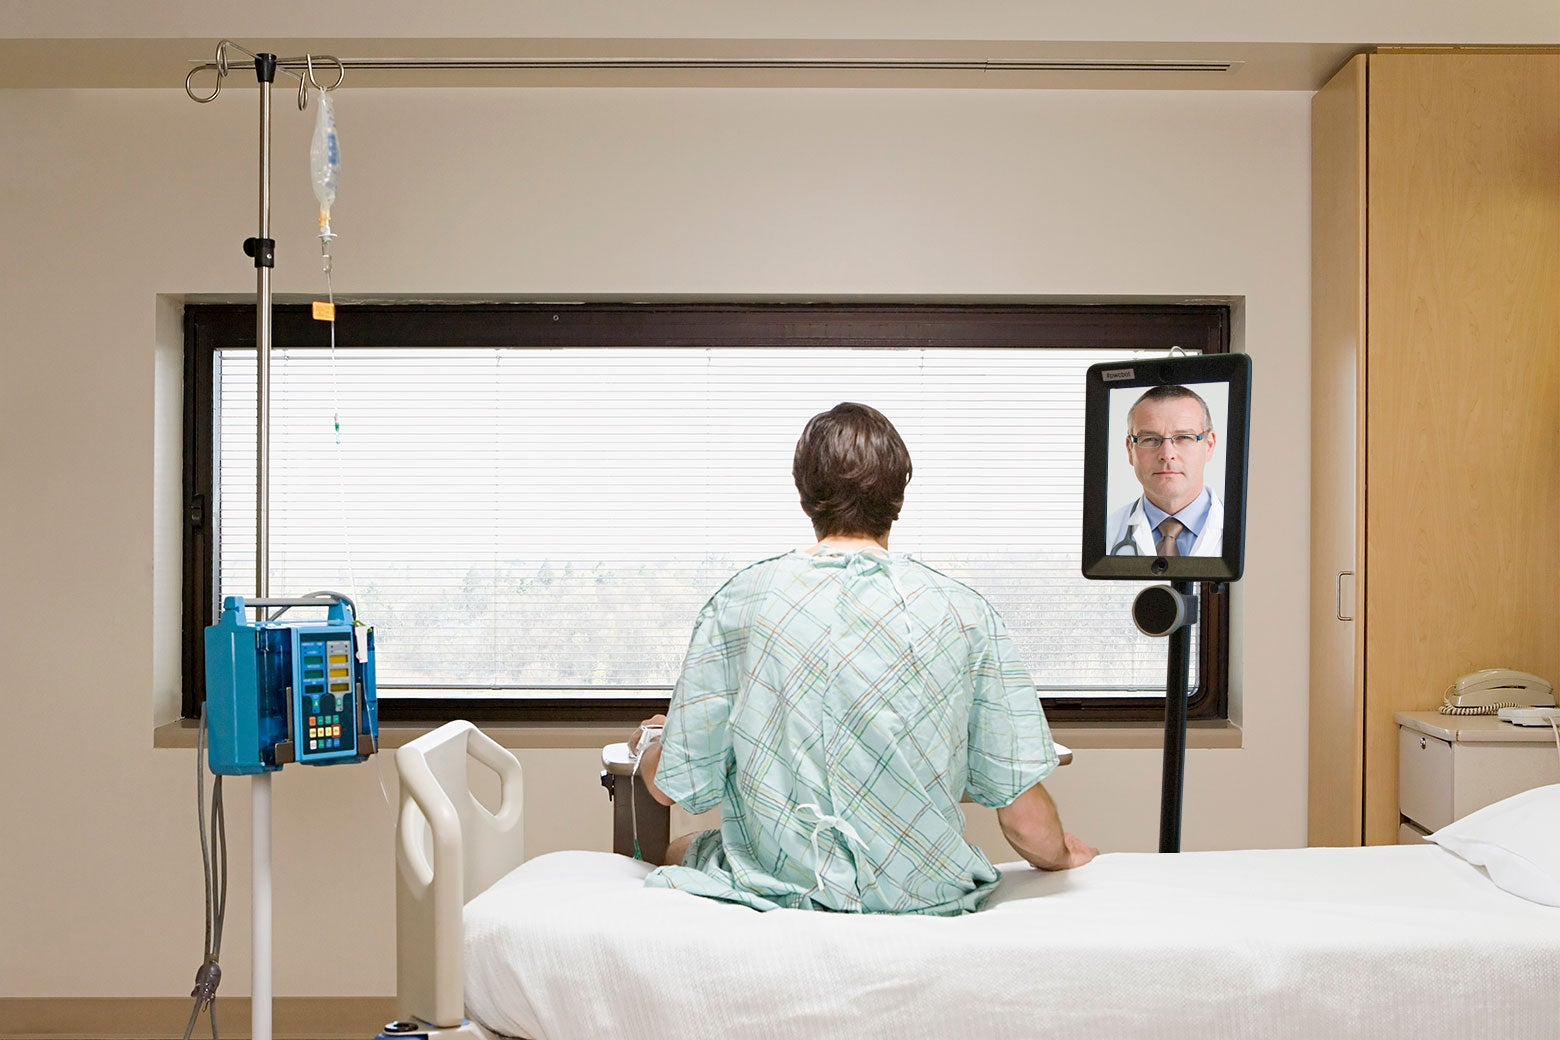 A patient sits on a hospital bed, talking to a doctor on a screen.